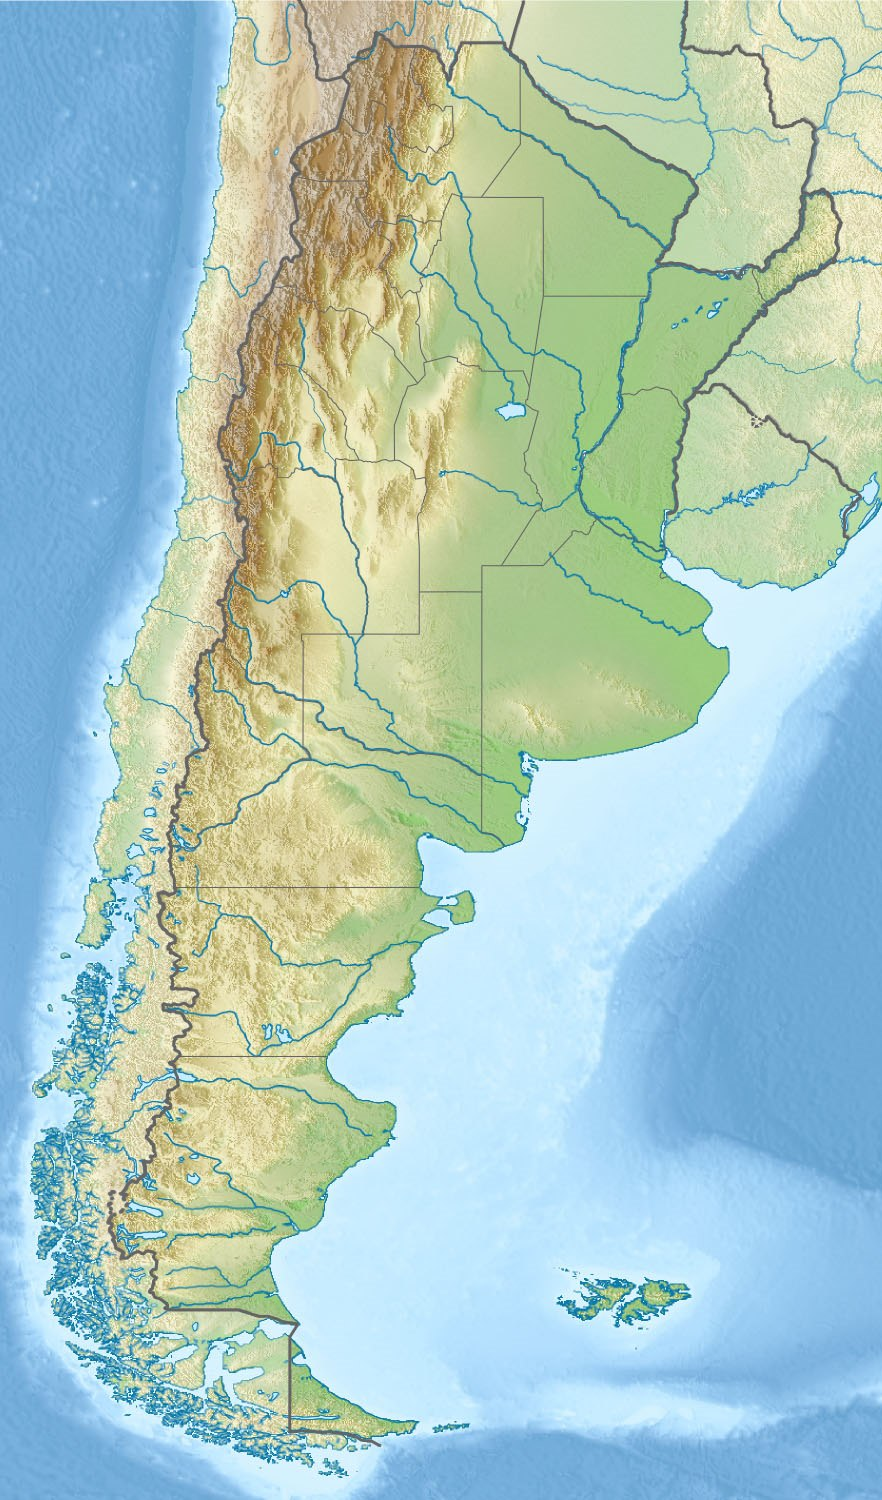 Map showing the location of Neuquén Basin